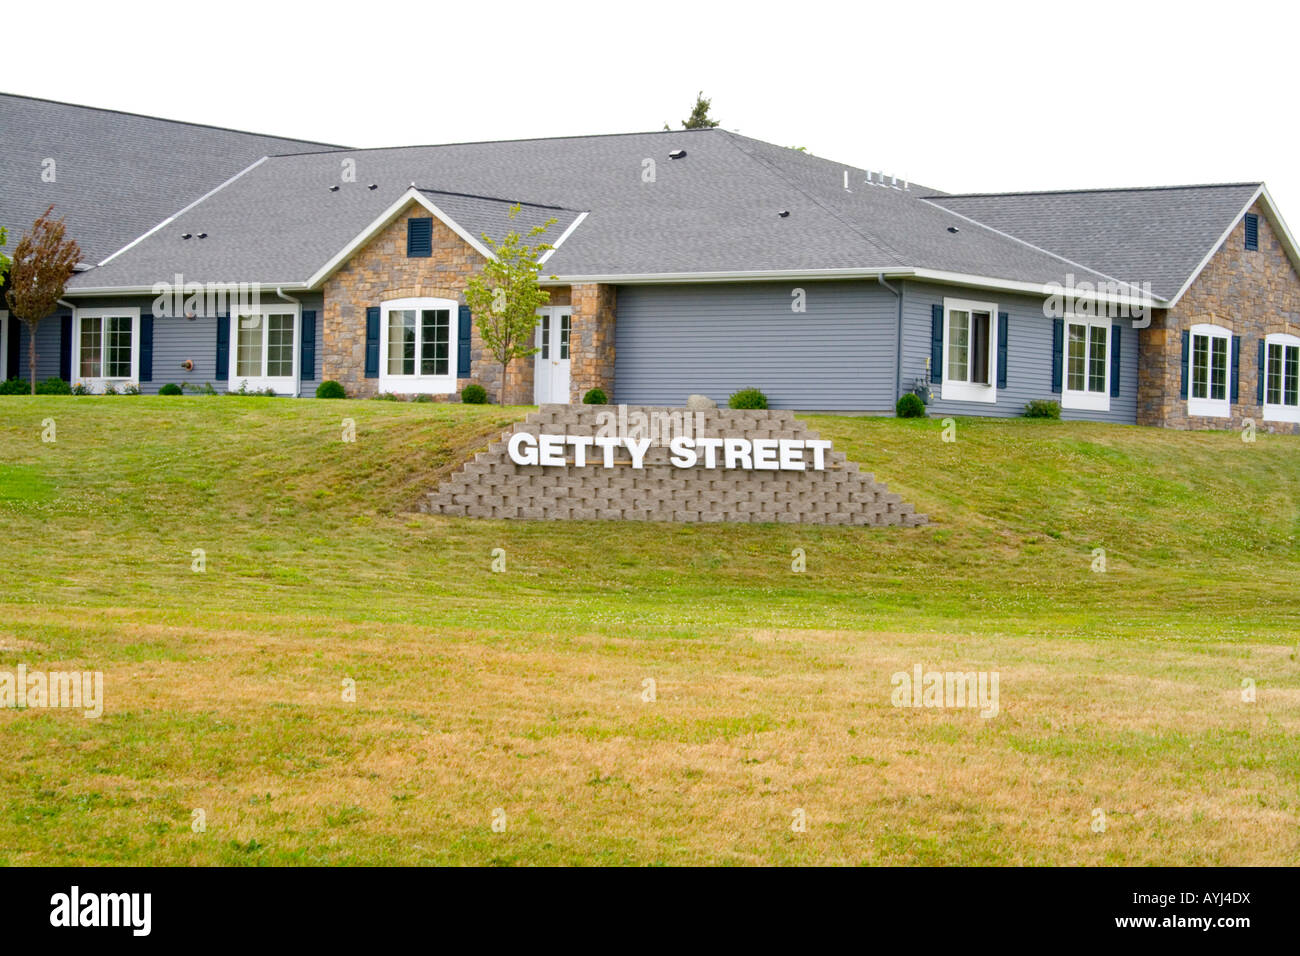 Getty Street not the home of Getty Images. Sauk Centre Minnesota USA - Stock Image